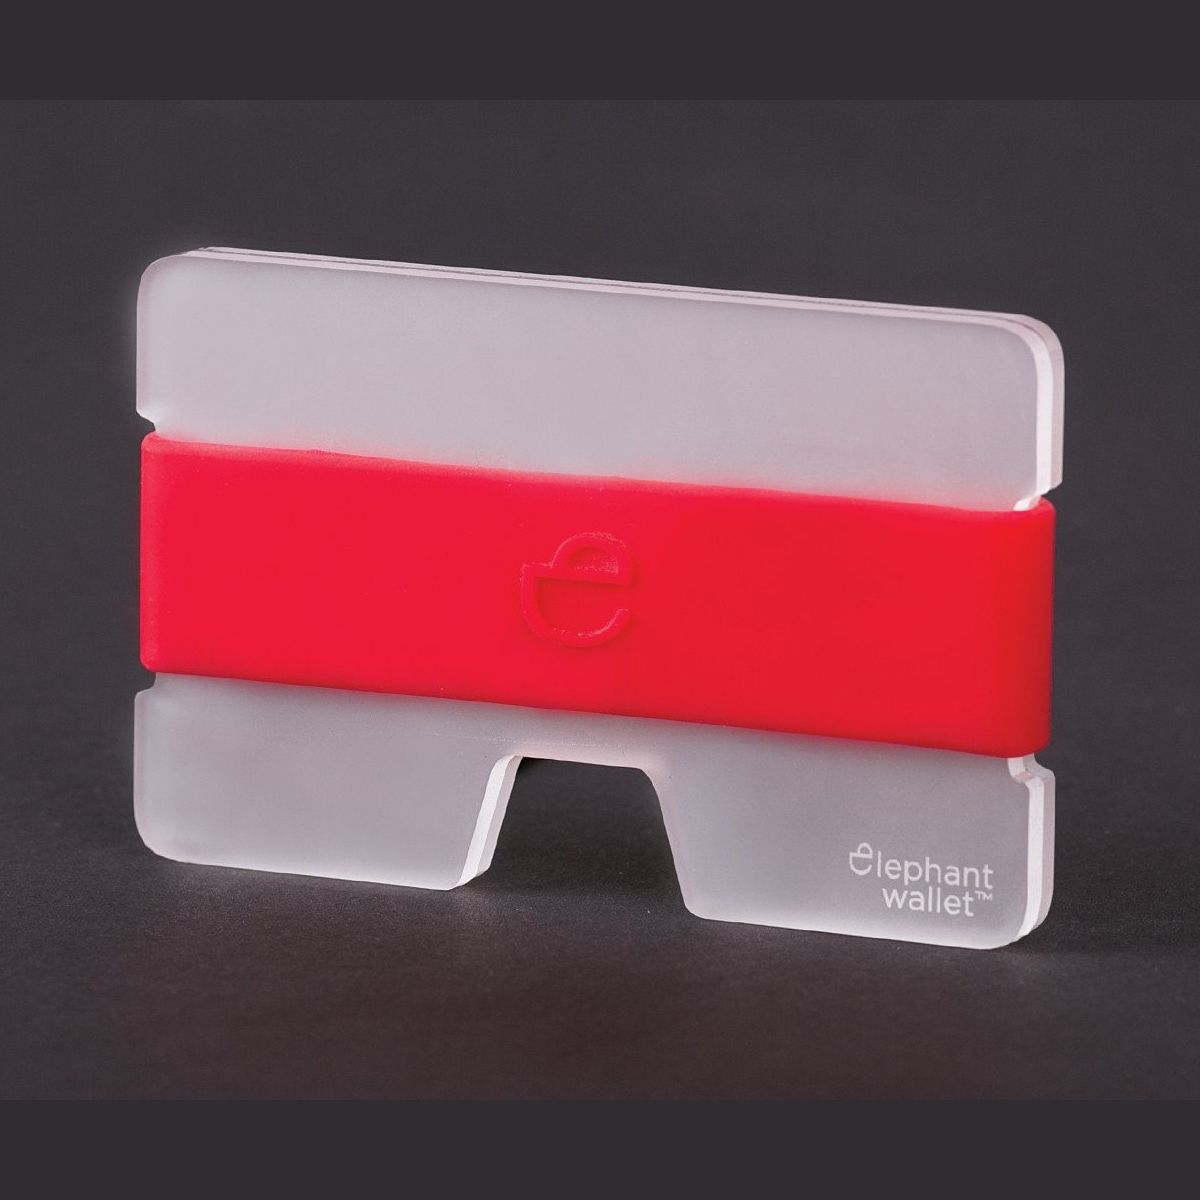 elephant Minimalist Plexi Wallet - Clear/Red